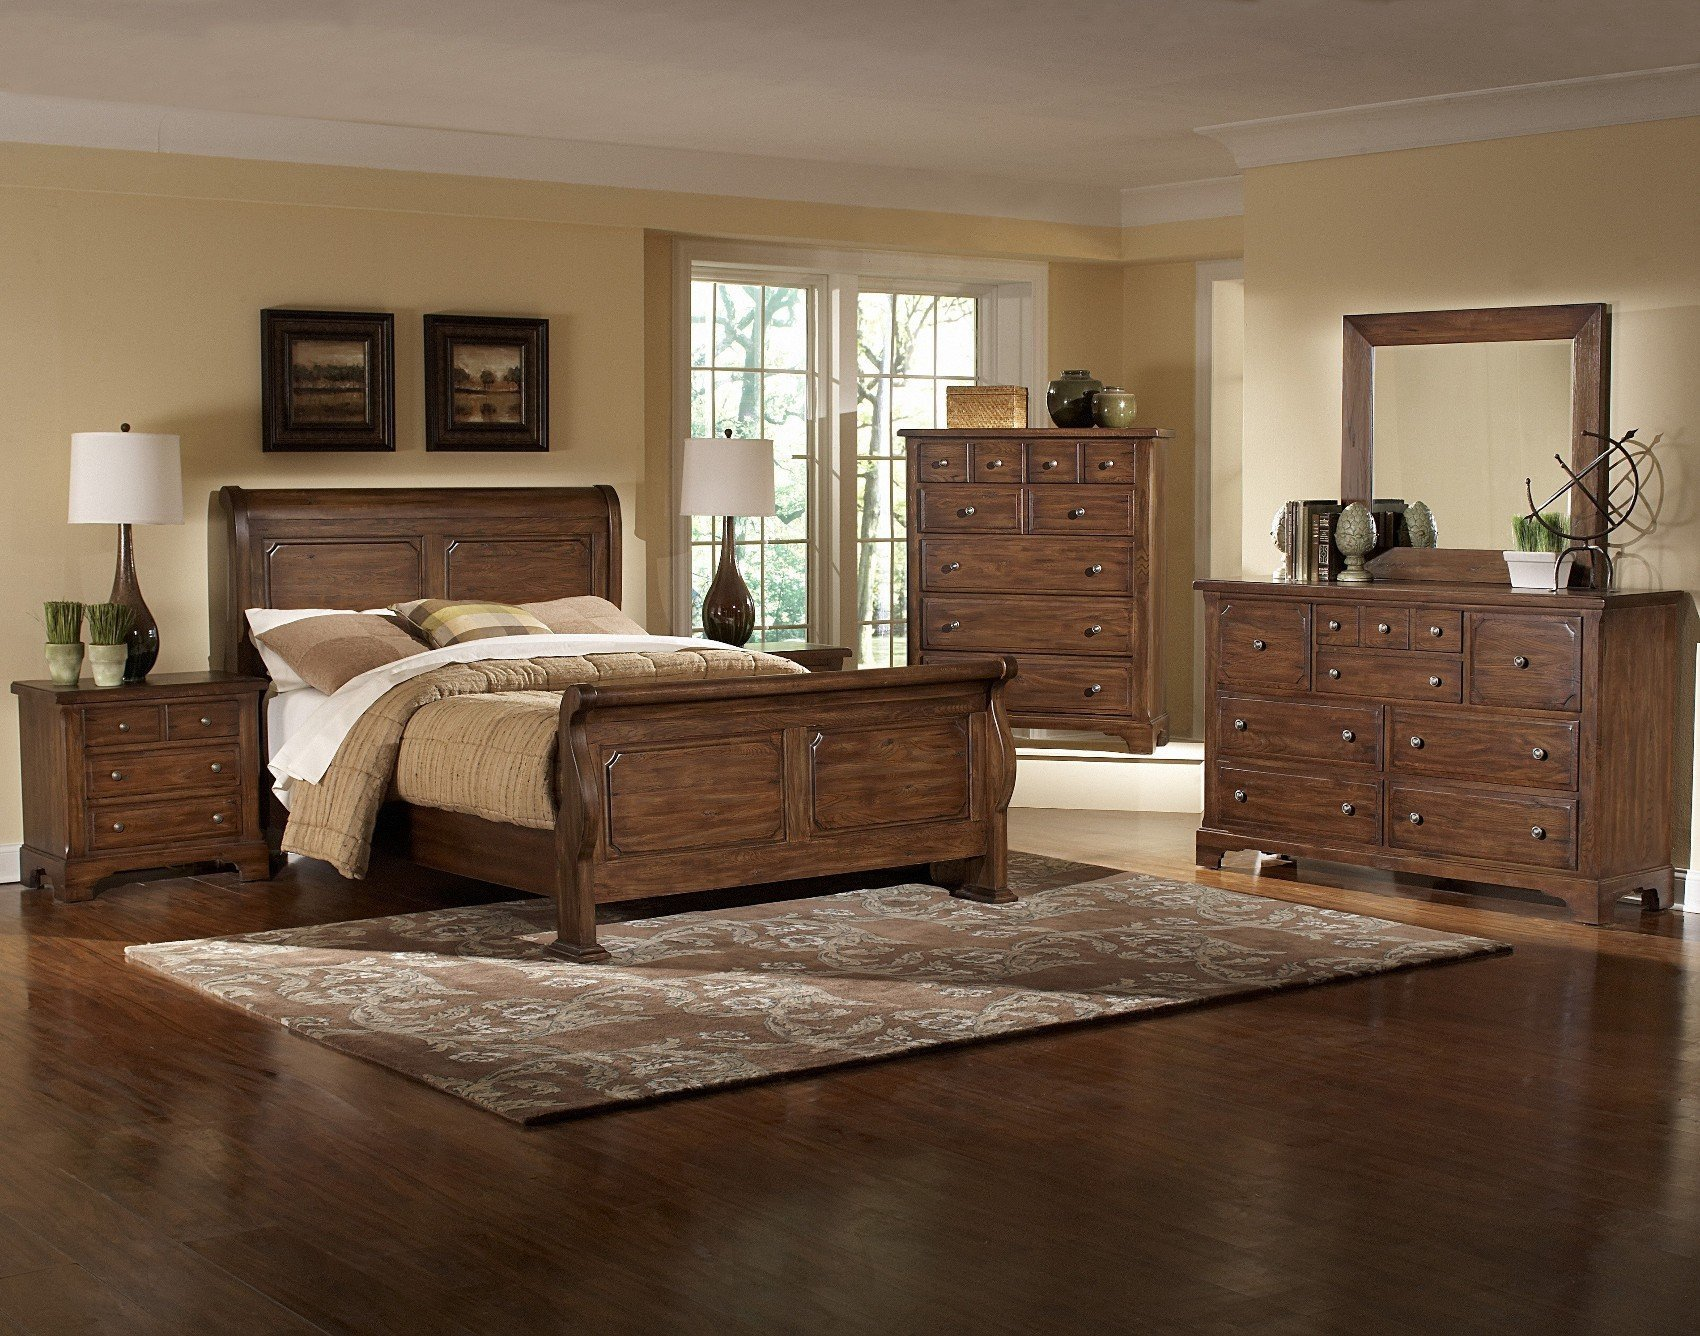 Black Wood Bedroom Set Fresh Modern Wooden Bedroom Furniture Designs